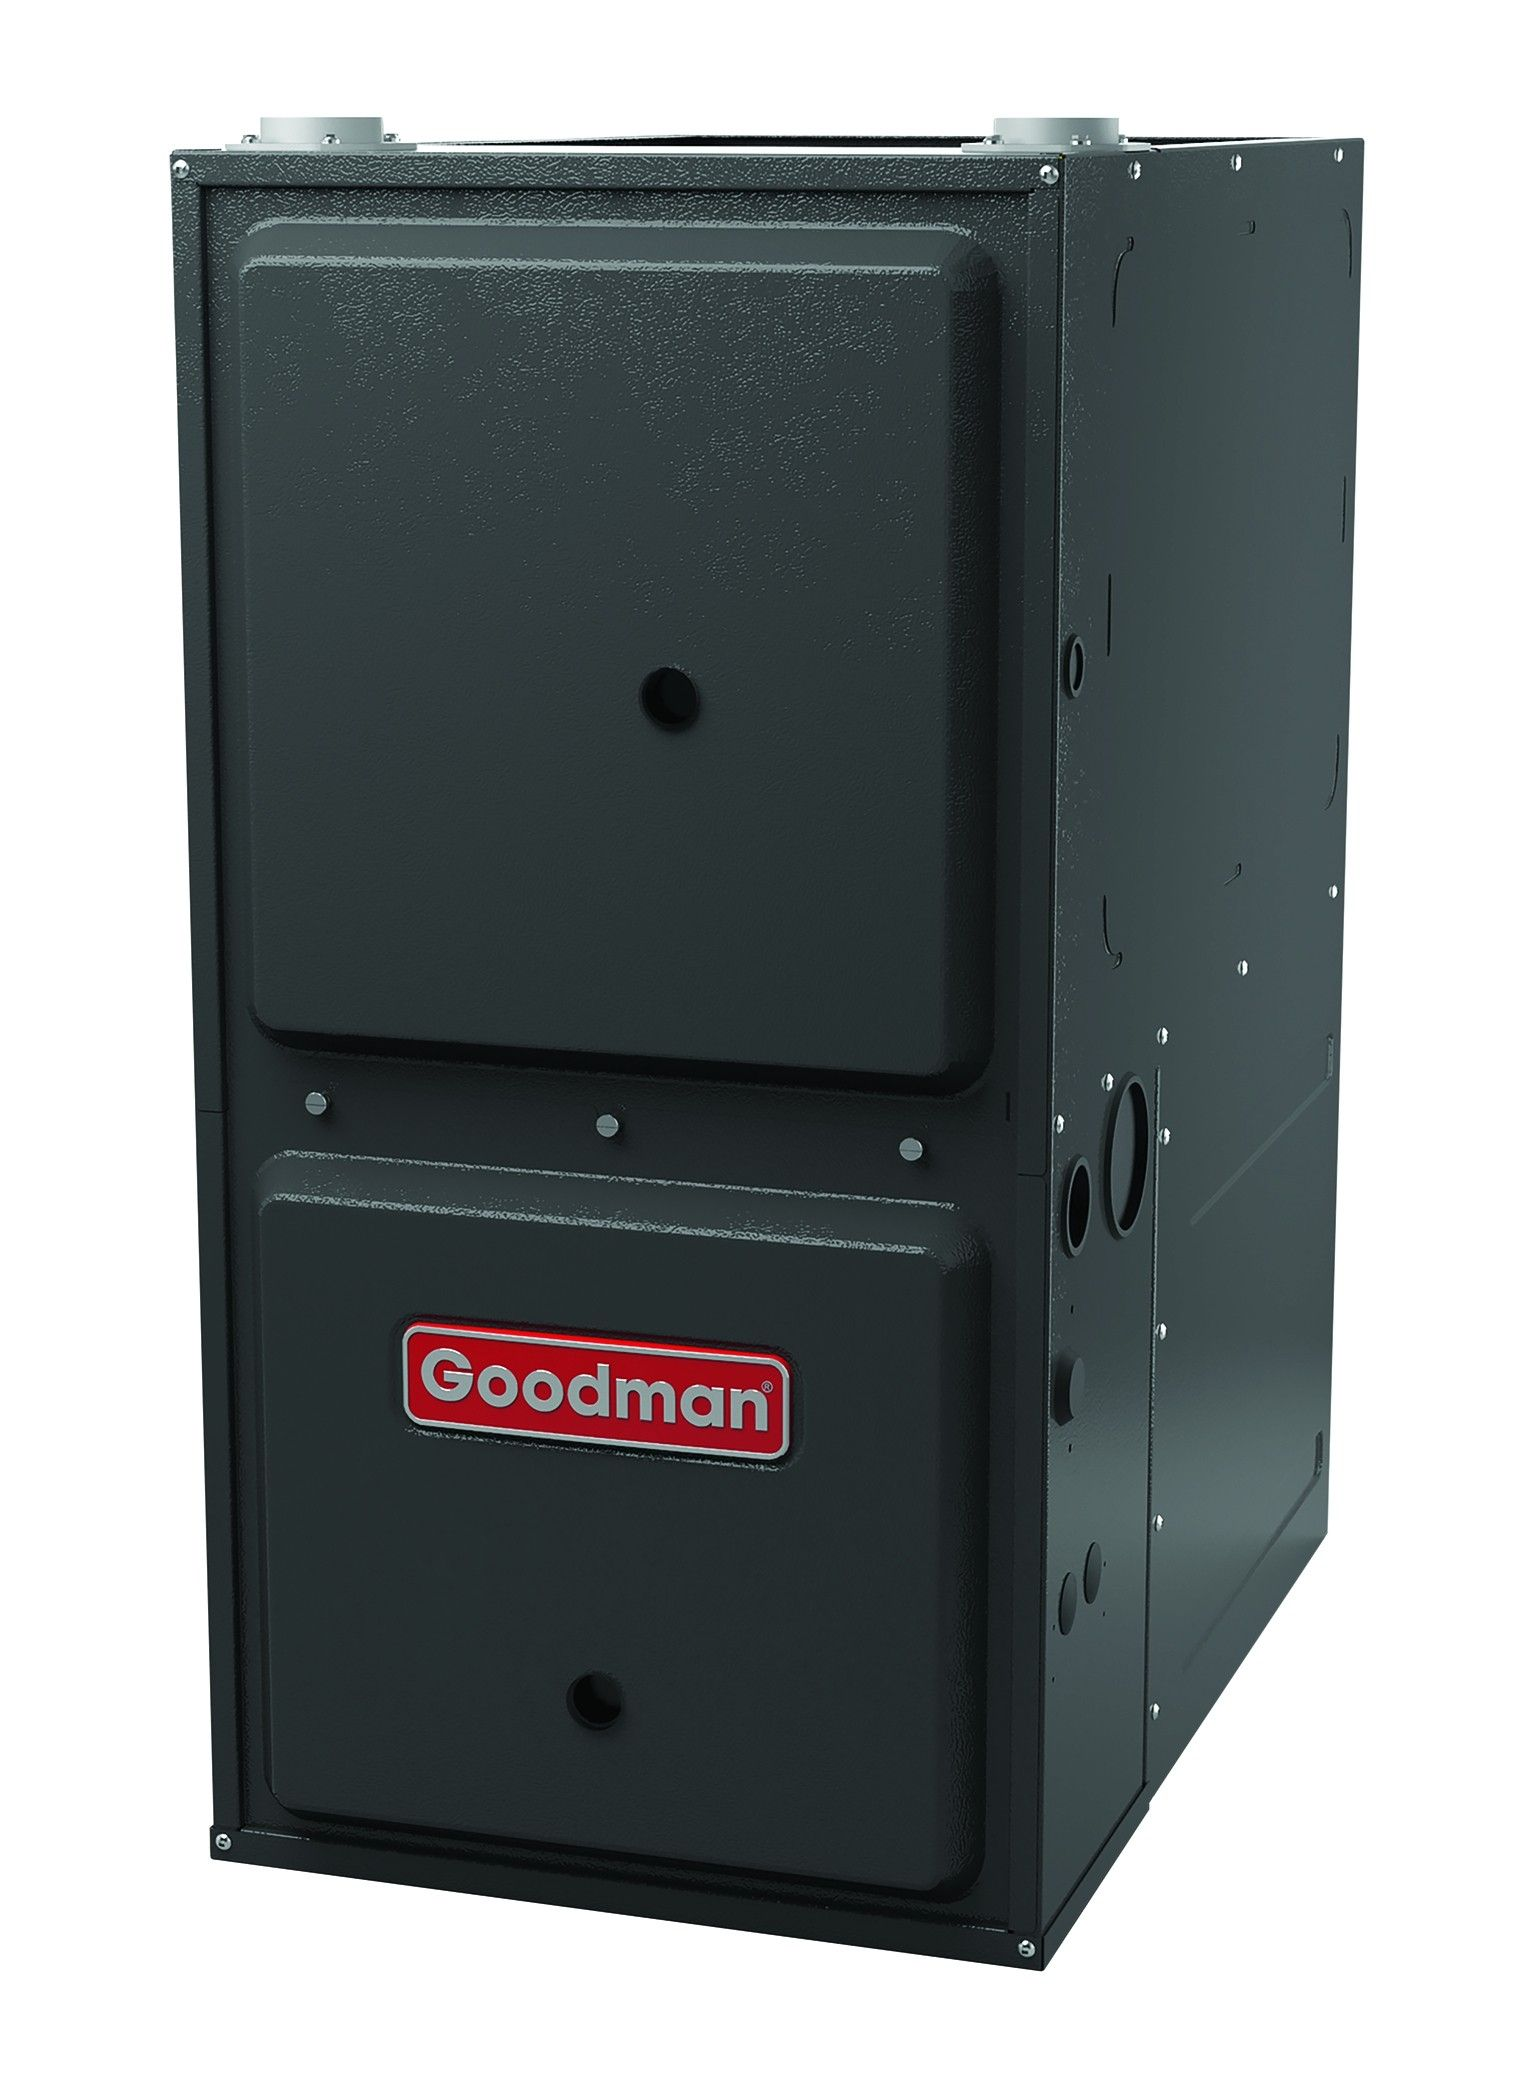 Goodman Gas Furnace - 40,000 BTU 96% Natural Gas Or Propane Single Stage Downflow - GCES960403BN